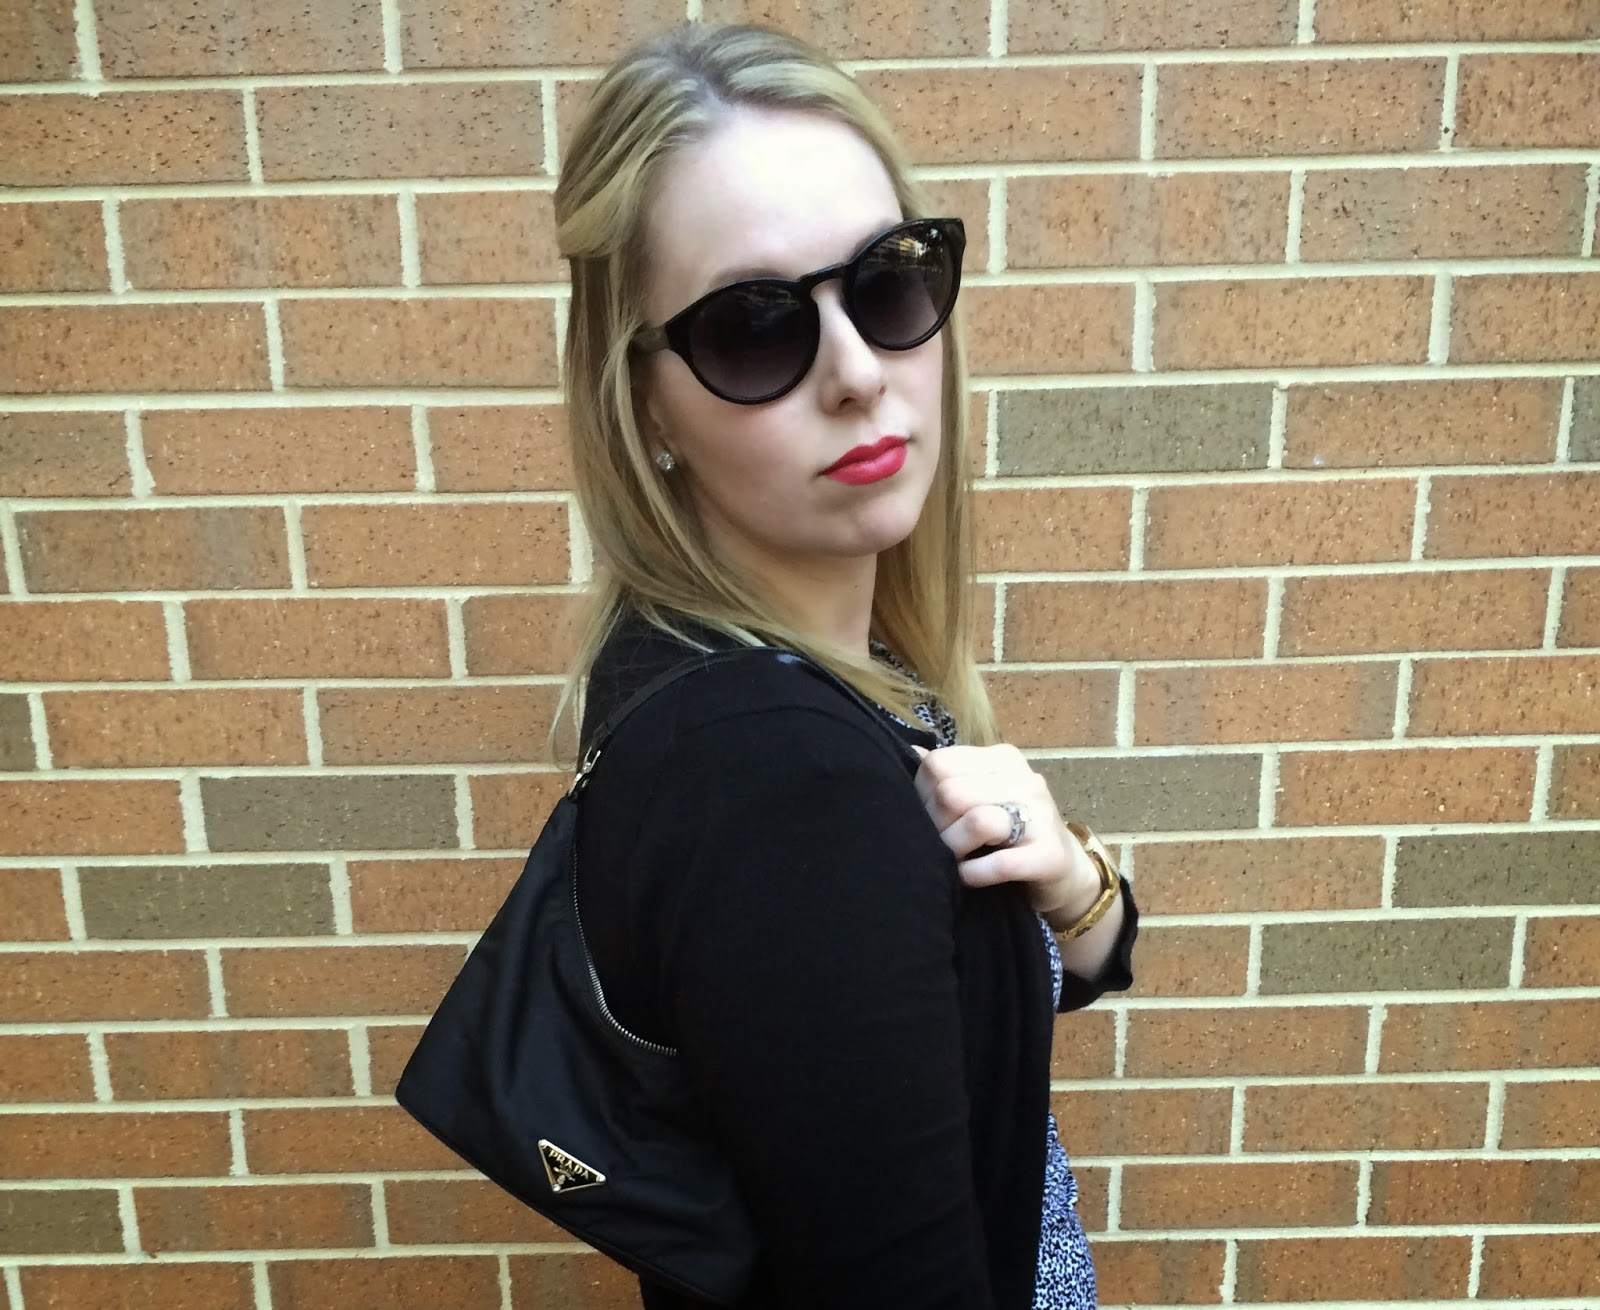 prada-bag-ann-taylor-sunglasses